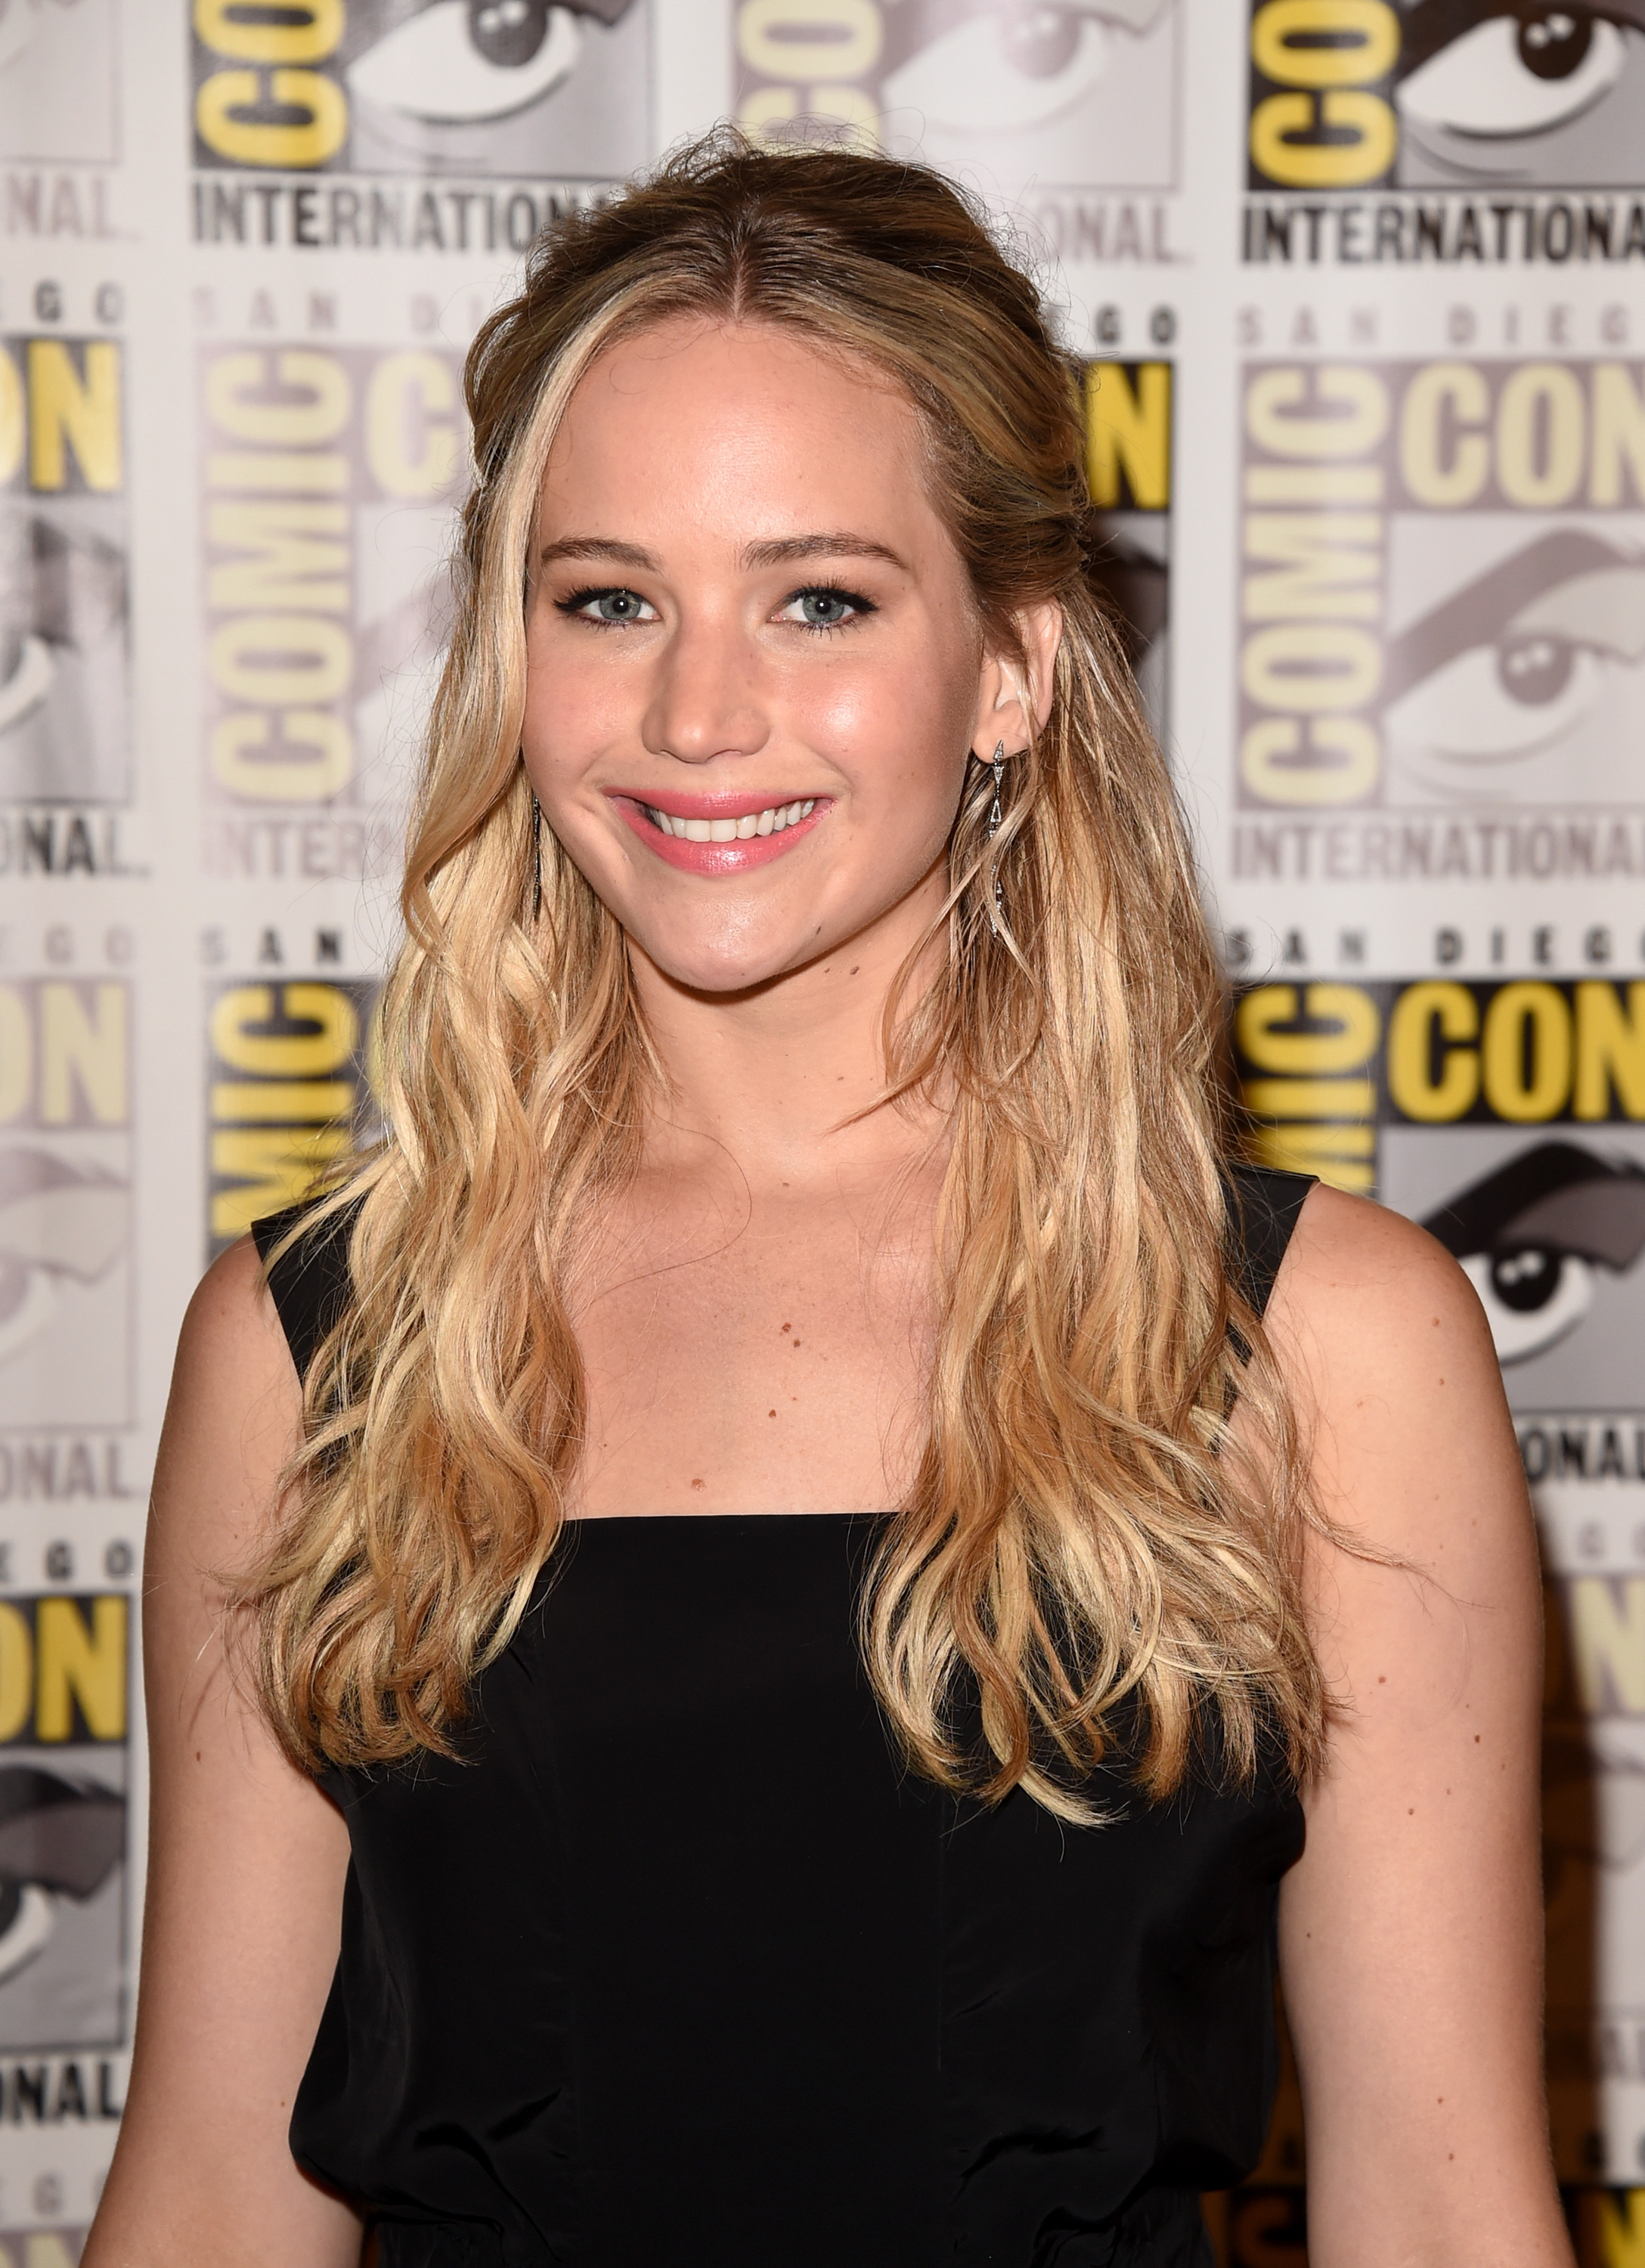 Jennifer Lawrence during Comic-Con International 2015 at the Hilton Bayfront on Jul. 9, 2015 in San Diego, Calif.